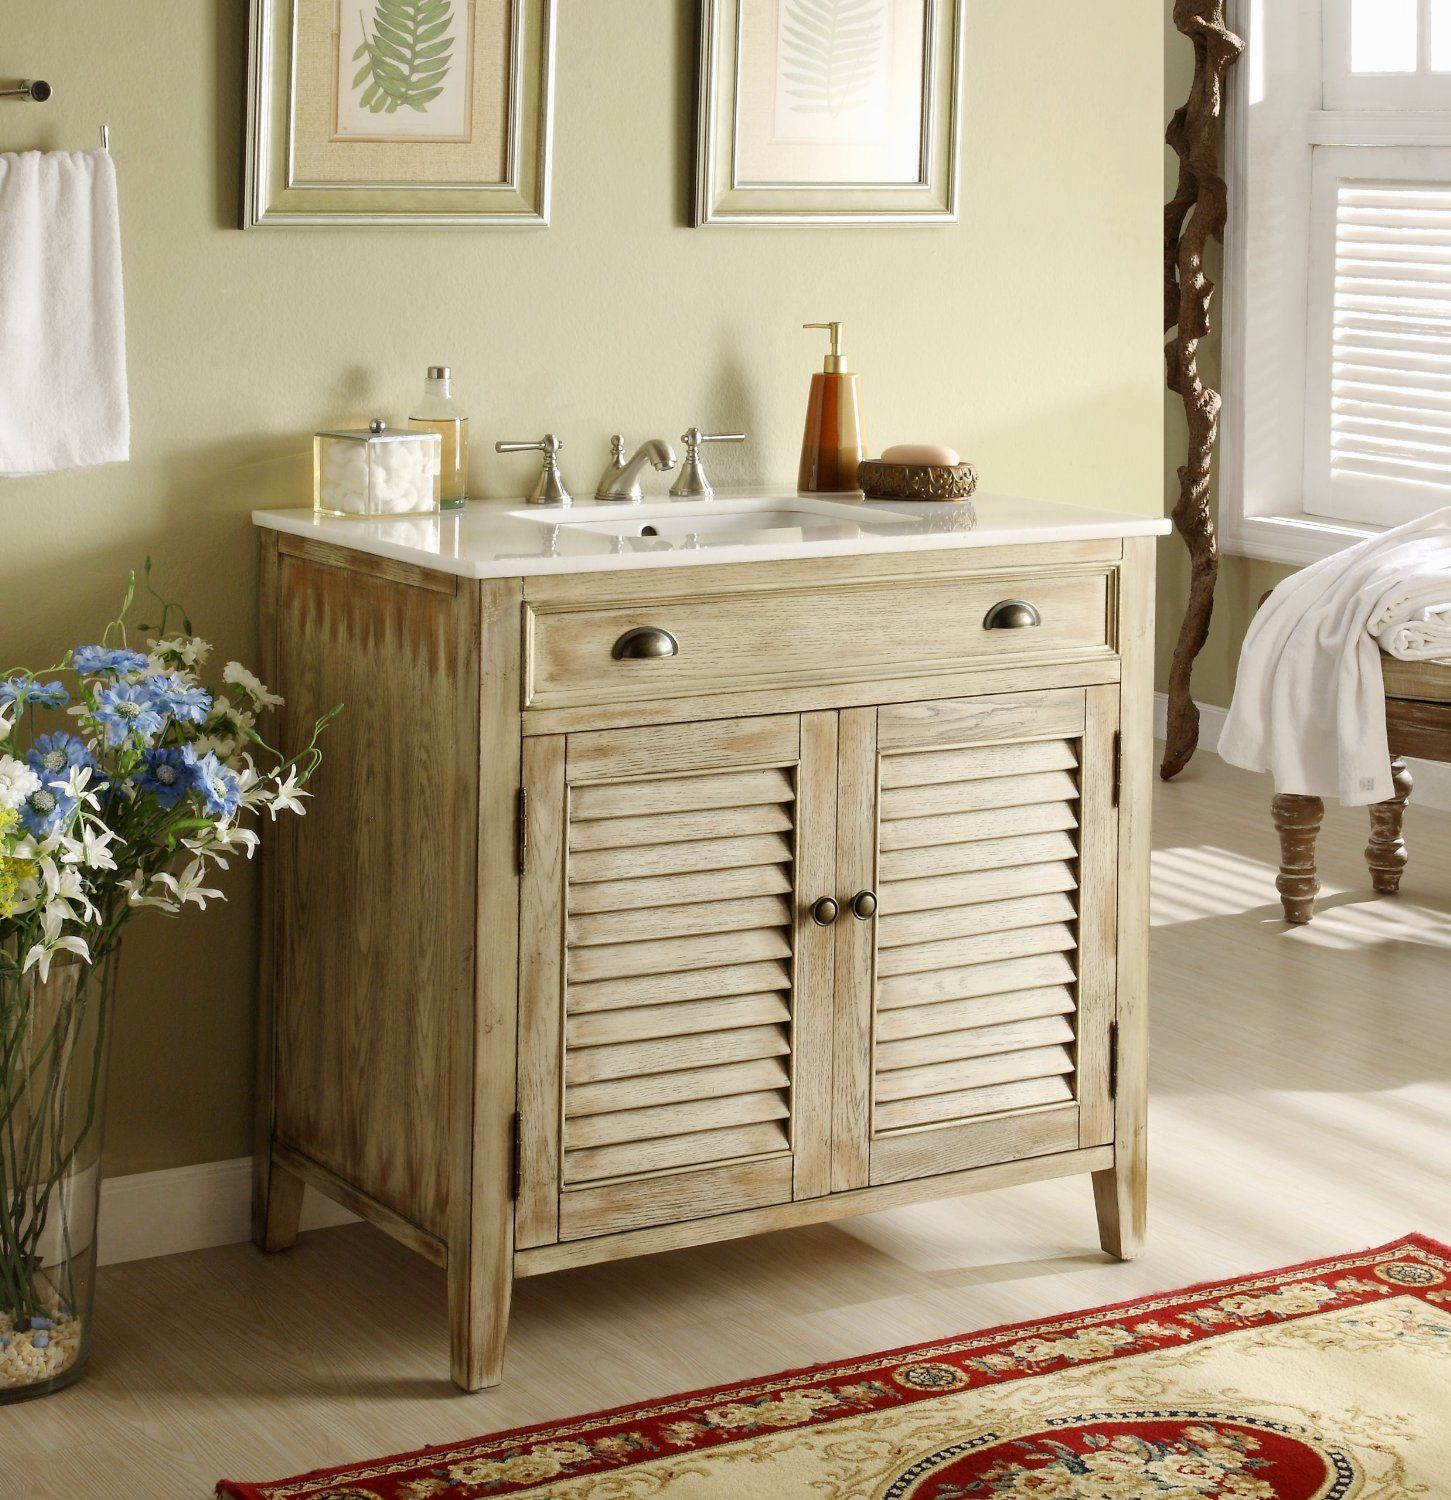 cabinets furniture home with hardware of amp sinks awesome vanities pictures style otsego restoration bath beautiful vanity bathroom